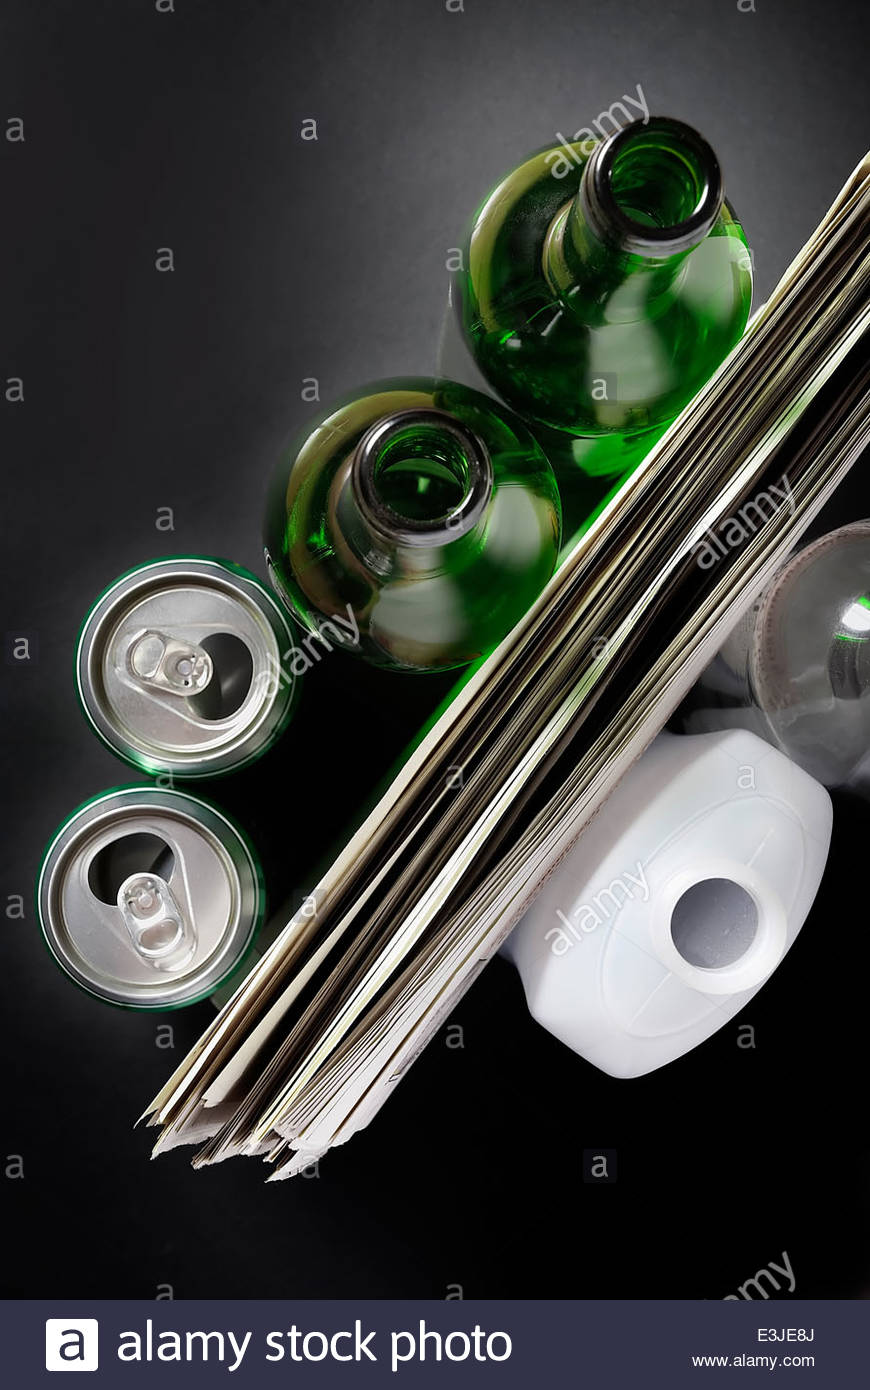 A collection of recyclable items on black background - Stock Image